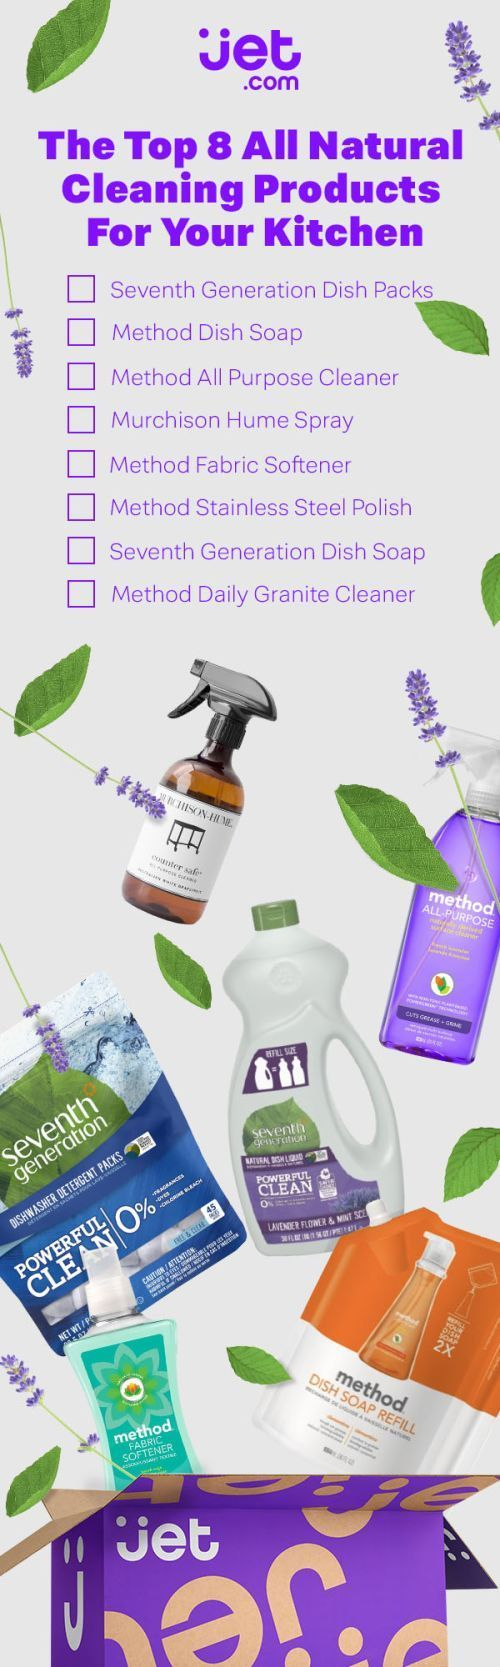 Best all natural cleaning products - If You Re Looking For Clean Household Supplies Try The Best Cleaning Products From Brands Like Seventh Generation Method And Earth Friendly Products